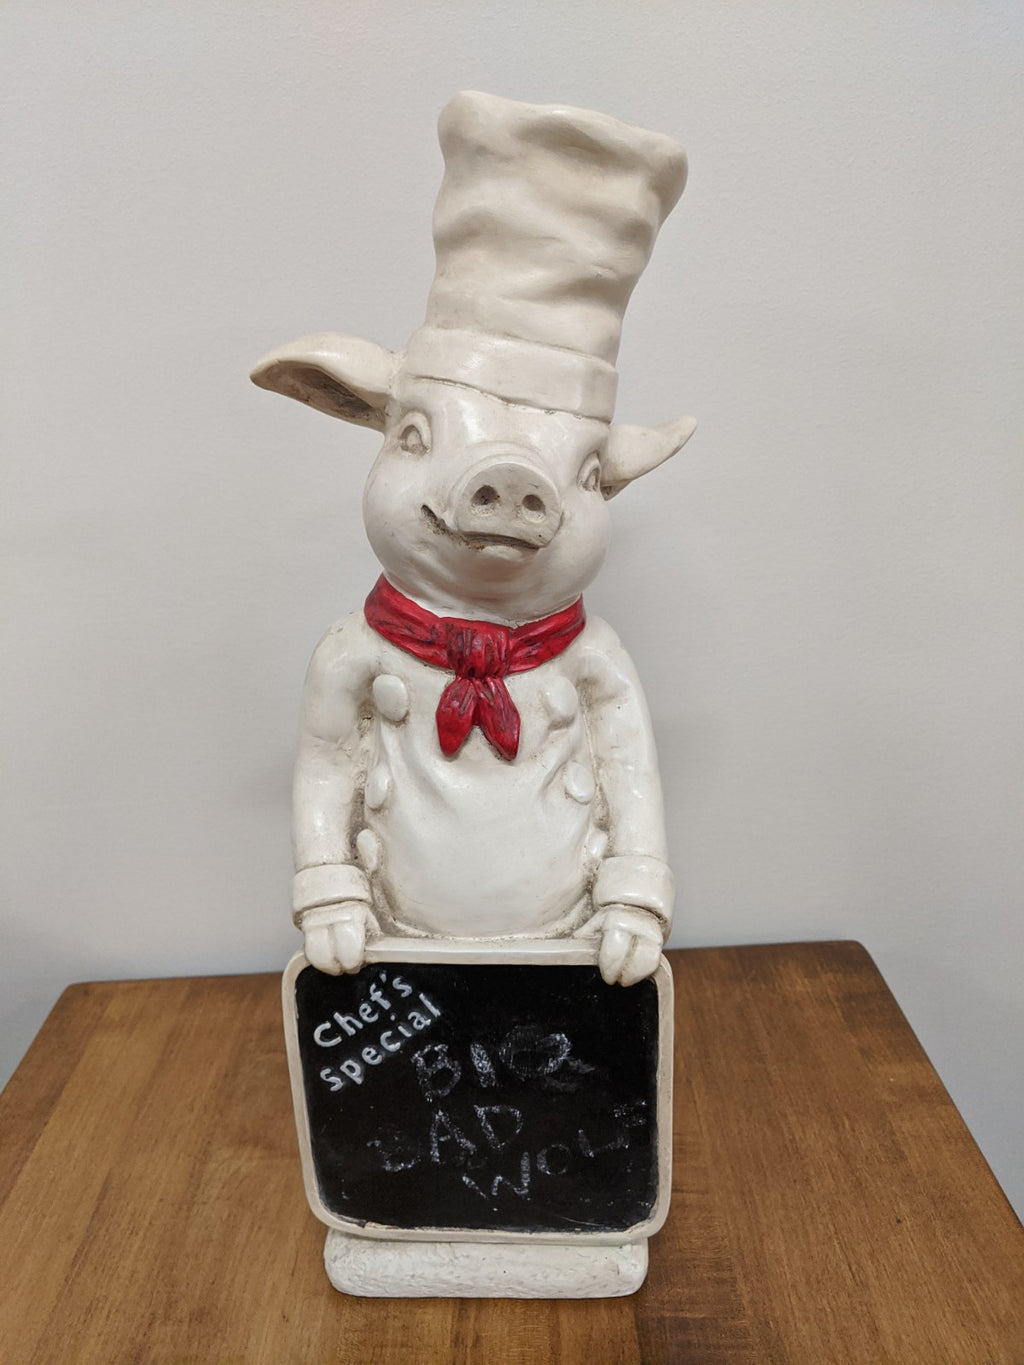 Chef Piggy's Daily Specials statuette